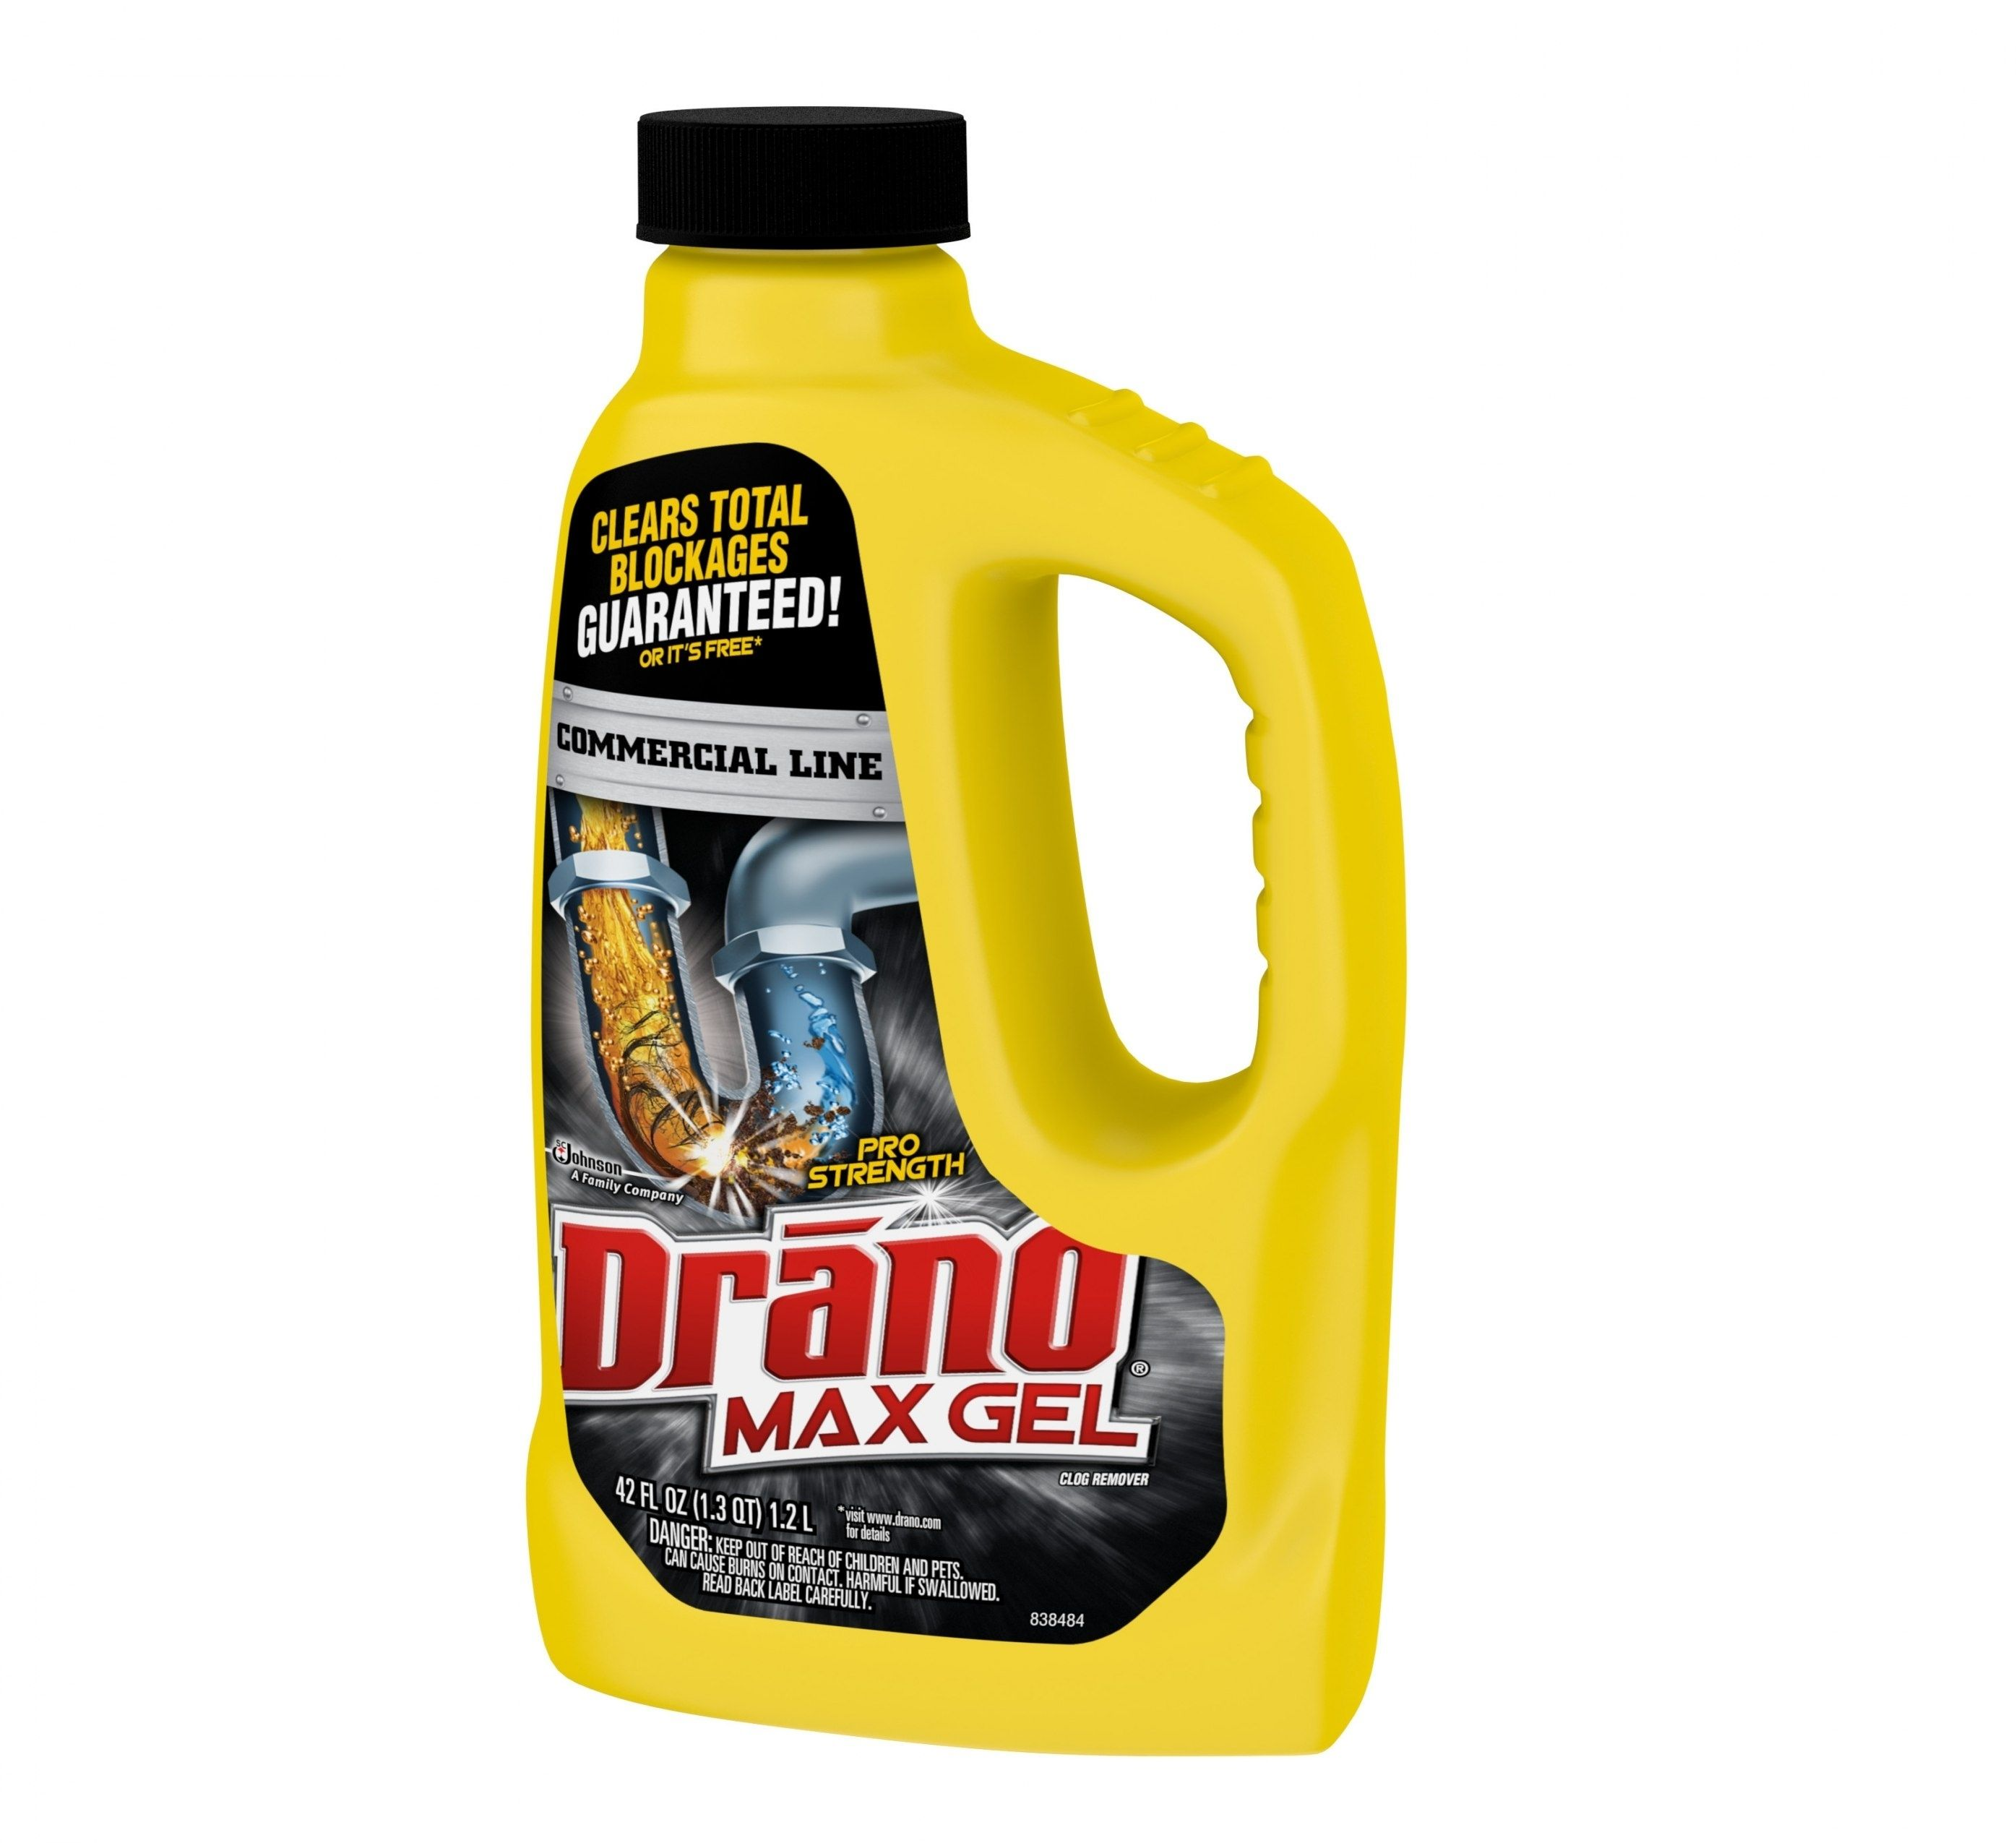 Drano For Kitchen Sink With Garbage Disposal Httpyonkouteinet - Drano for kitchen sink